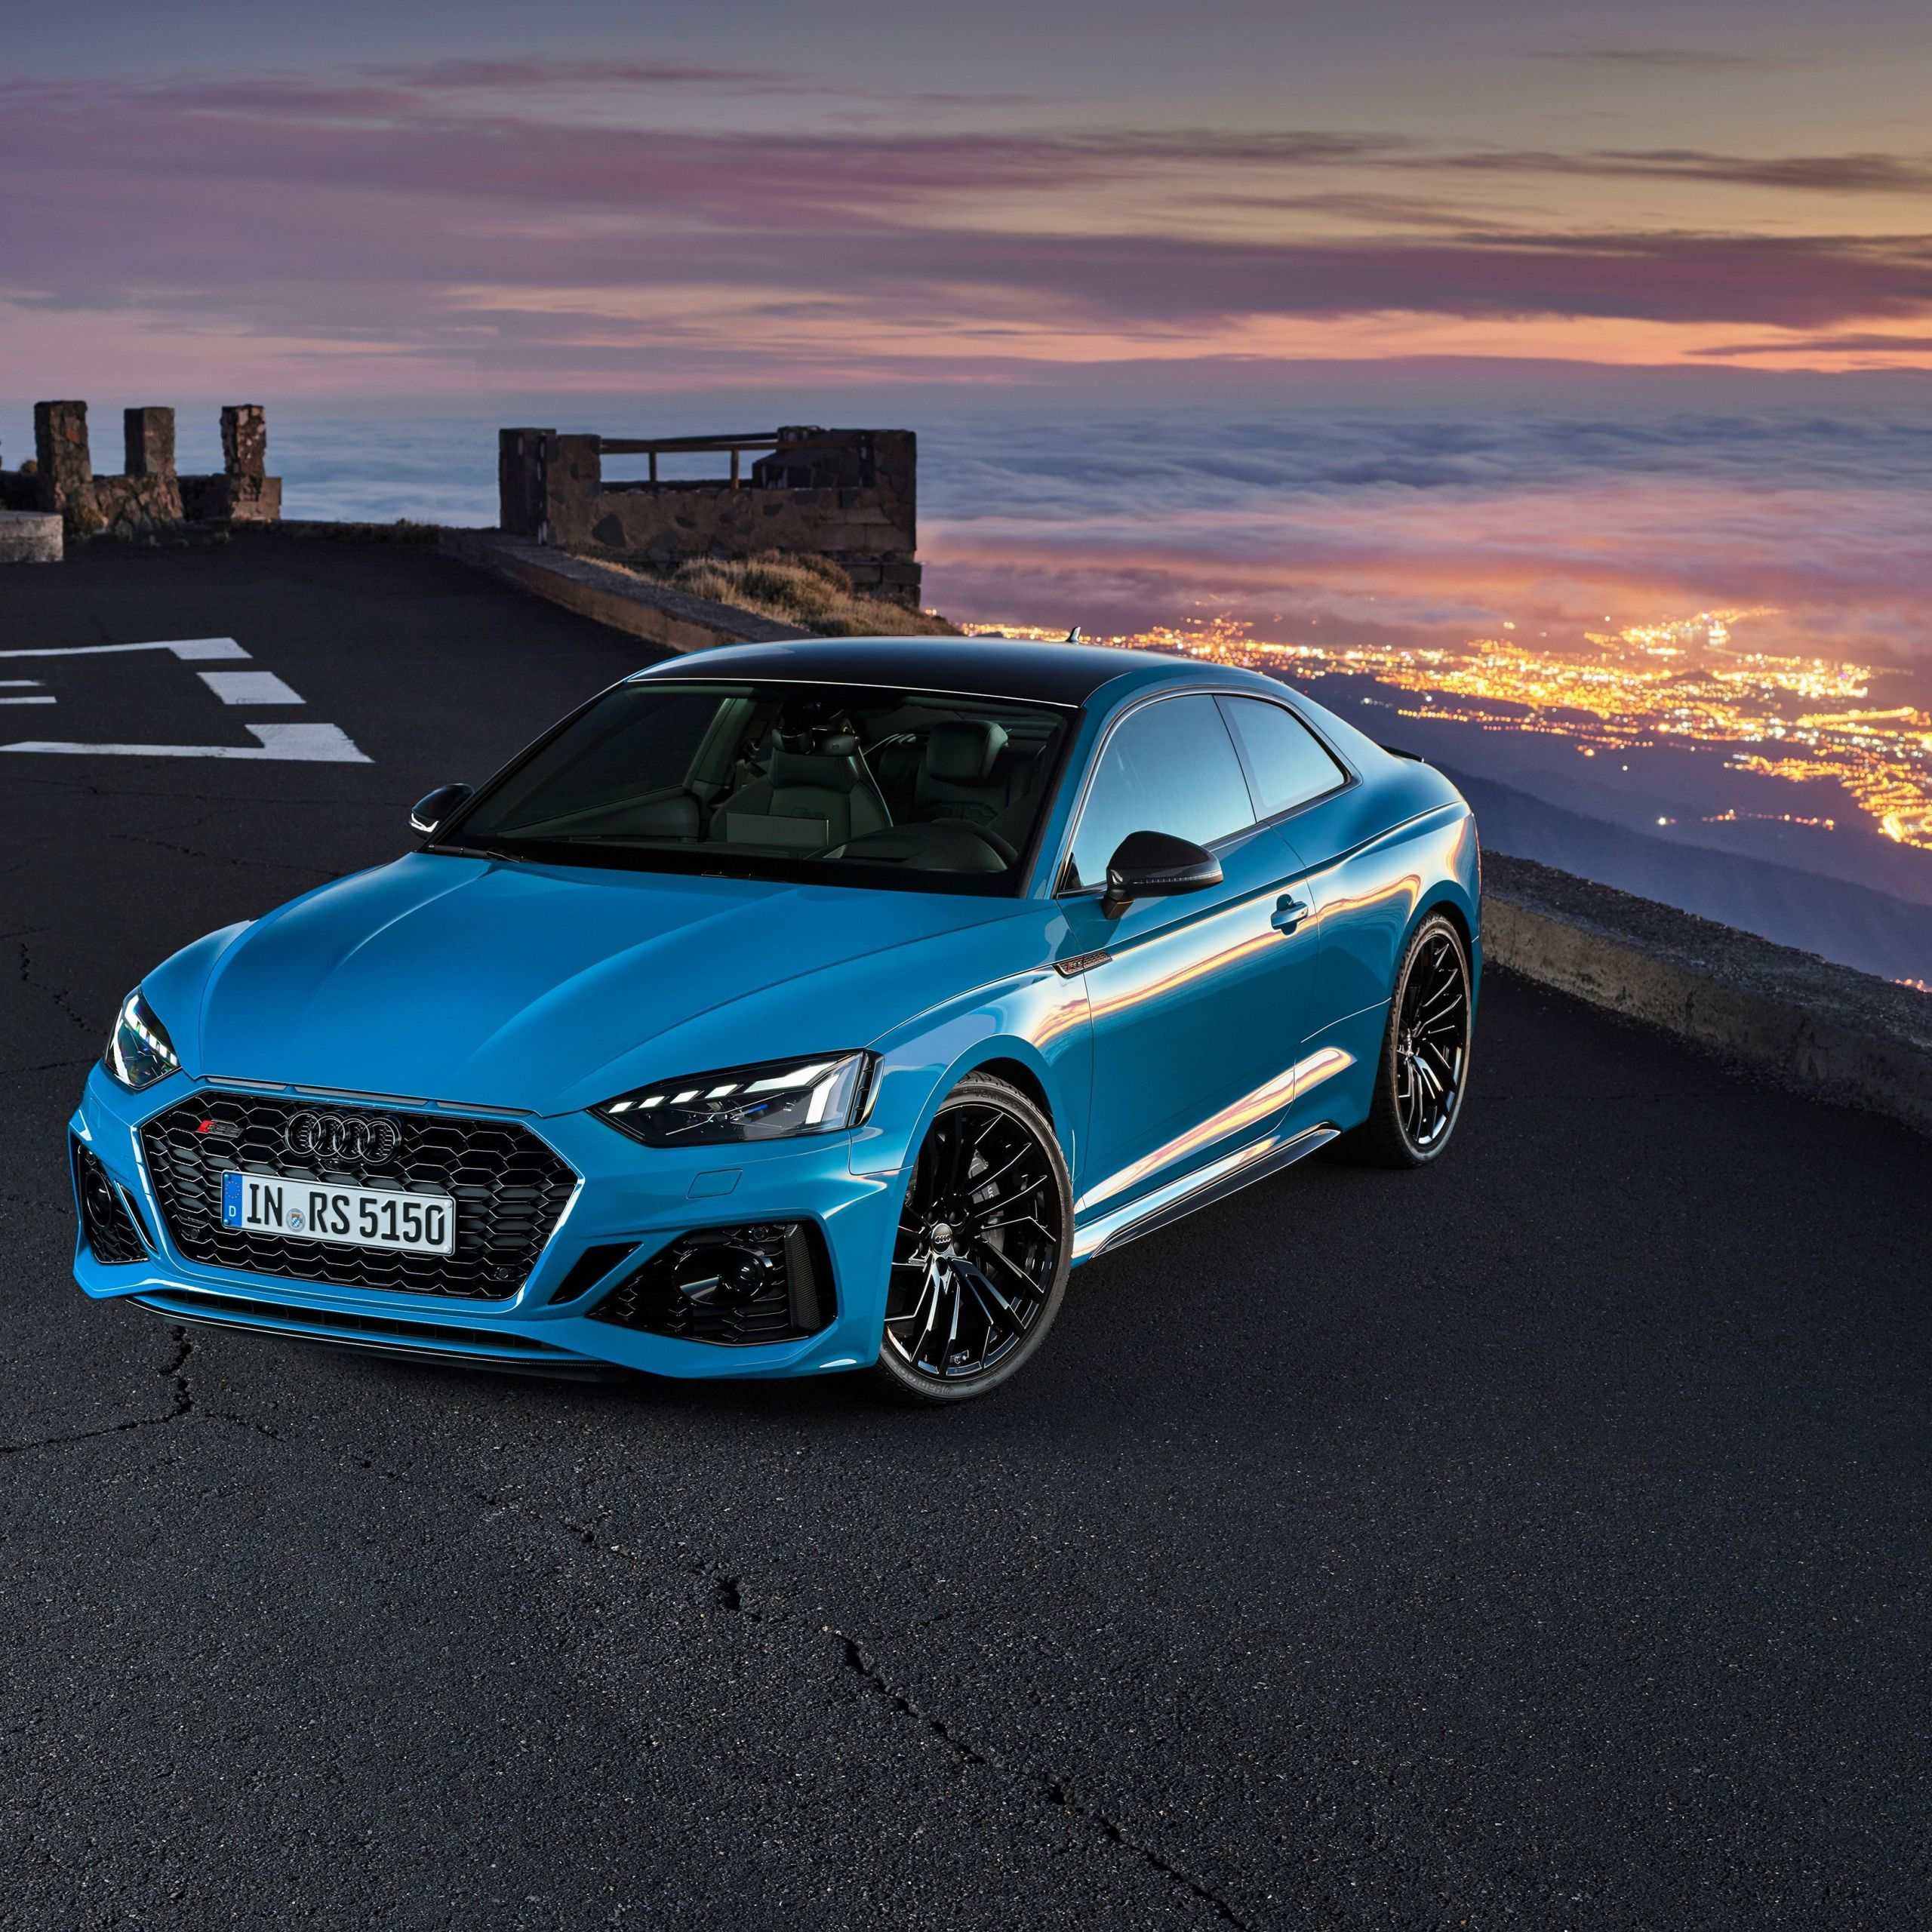 Rs5 for Sale Lovely 2020 Audi Rs5 Review Pricing and Specs